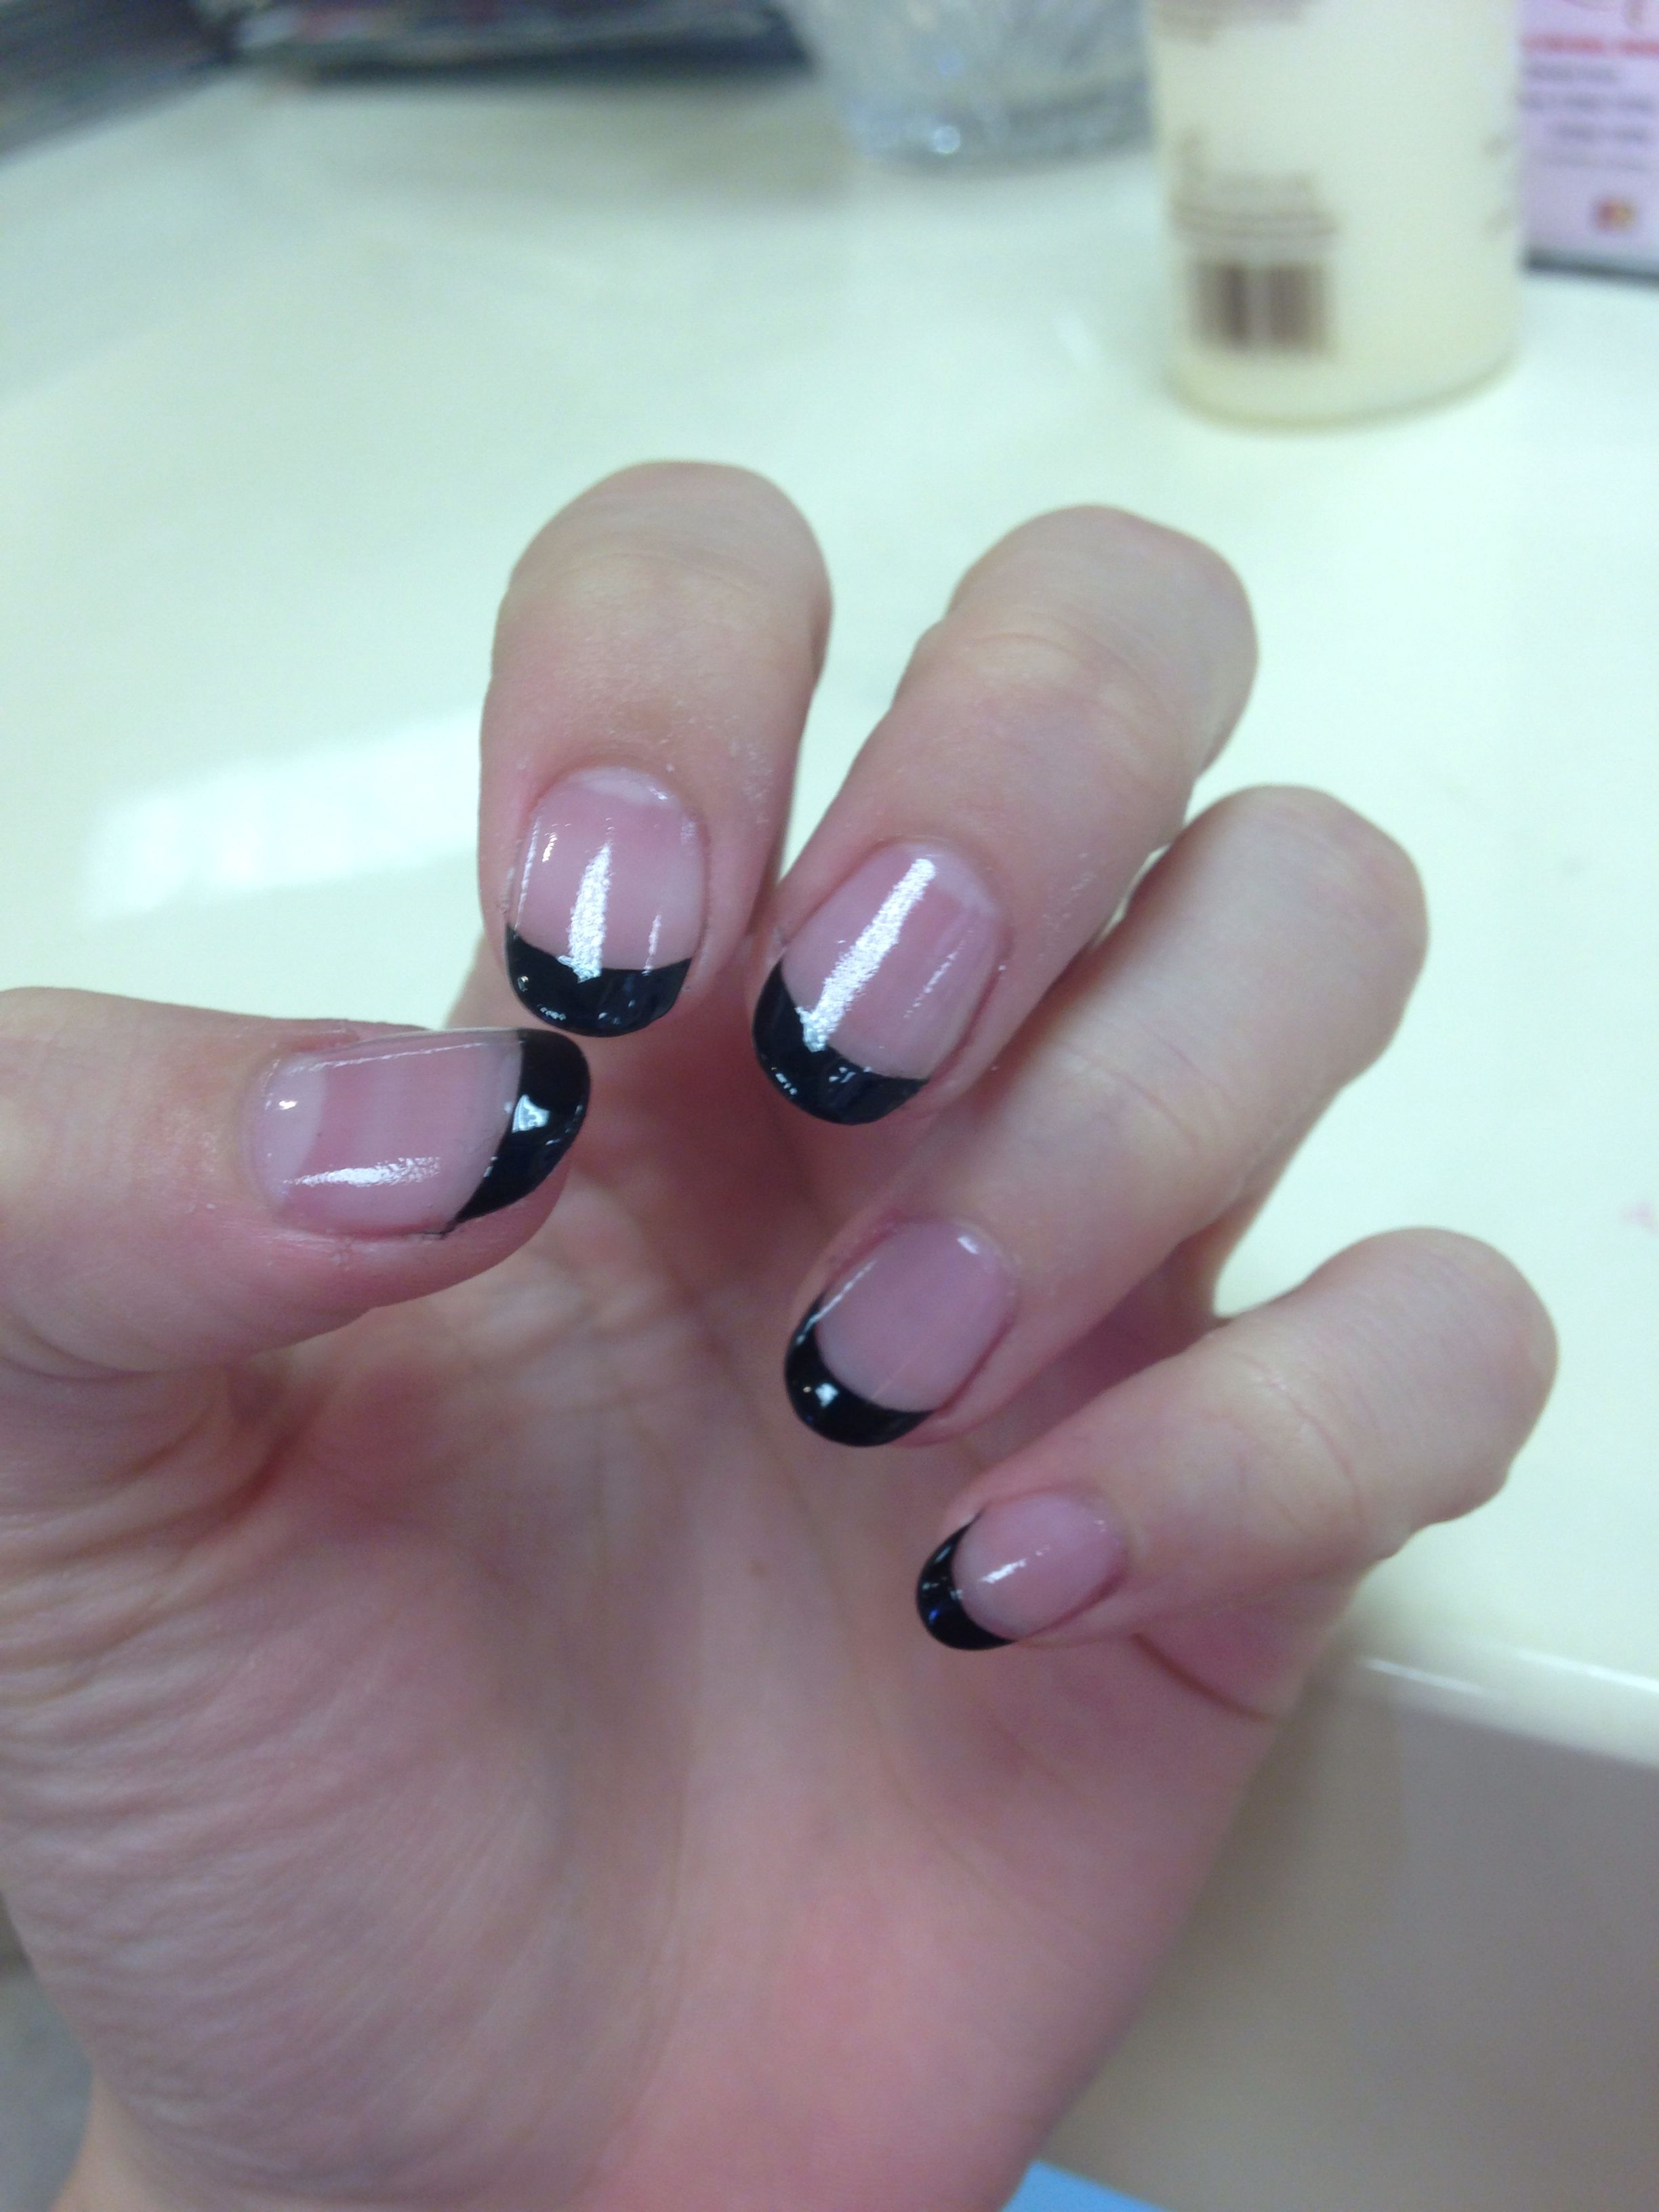 Black French tip rounded acrylics | Nails | Pinterest | Acrylics ...